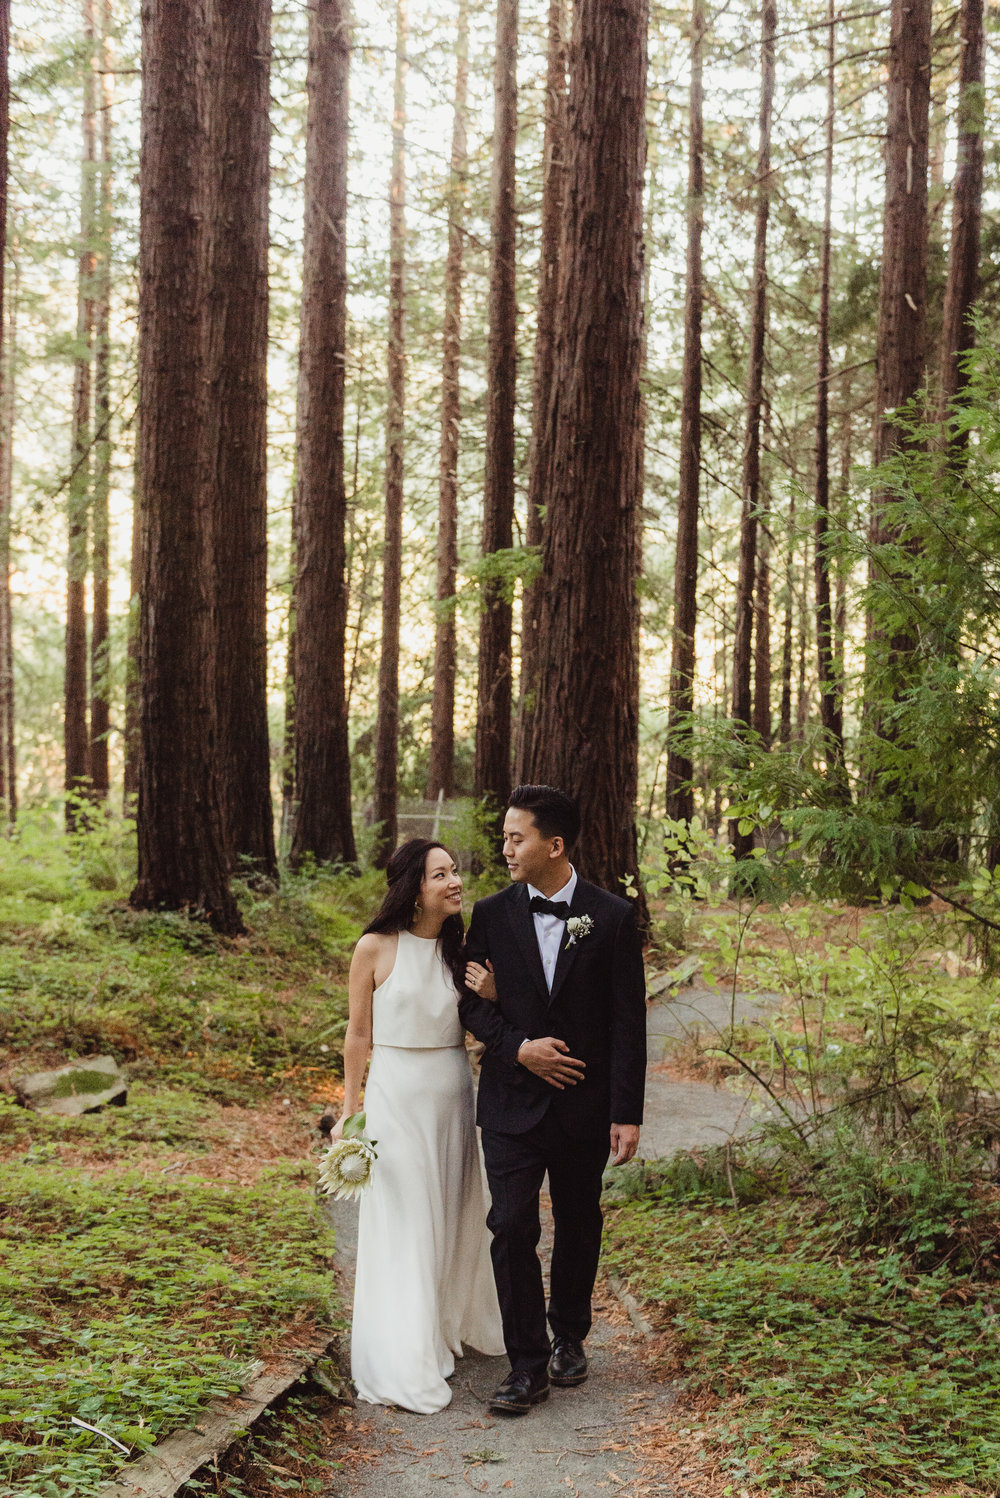 39-mather-redwood-grove-uc-botanical-garden-wedding-vivianchen-387.jpg